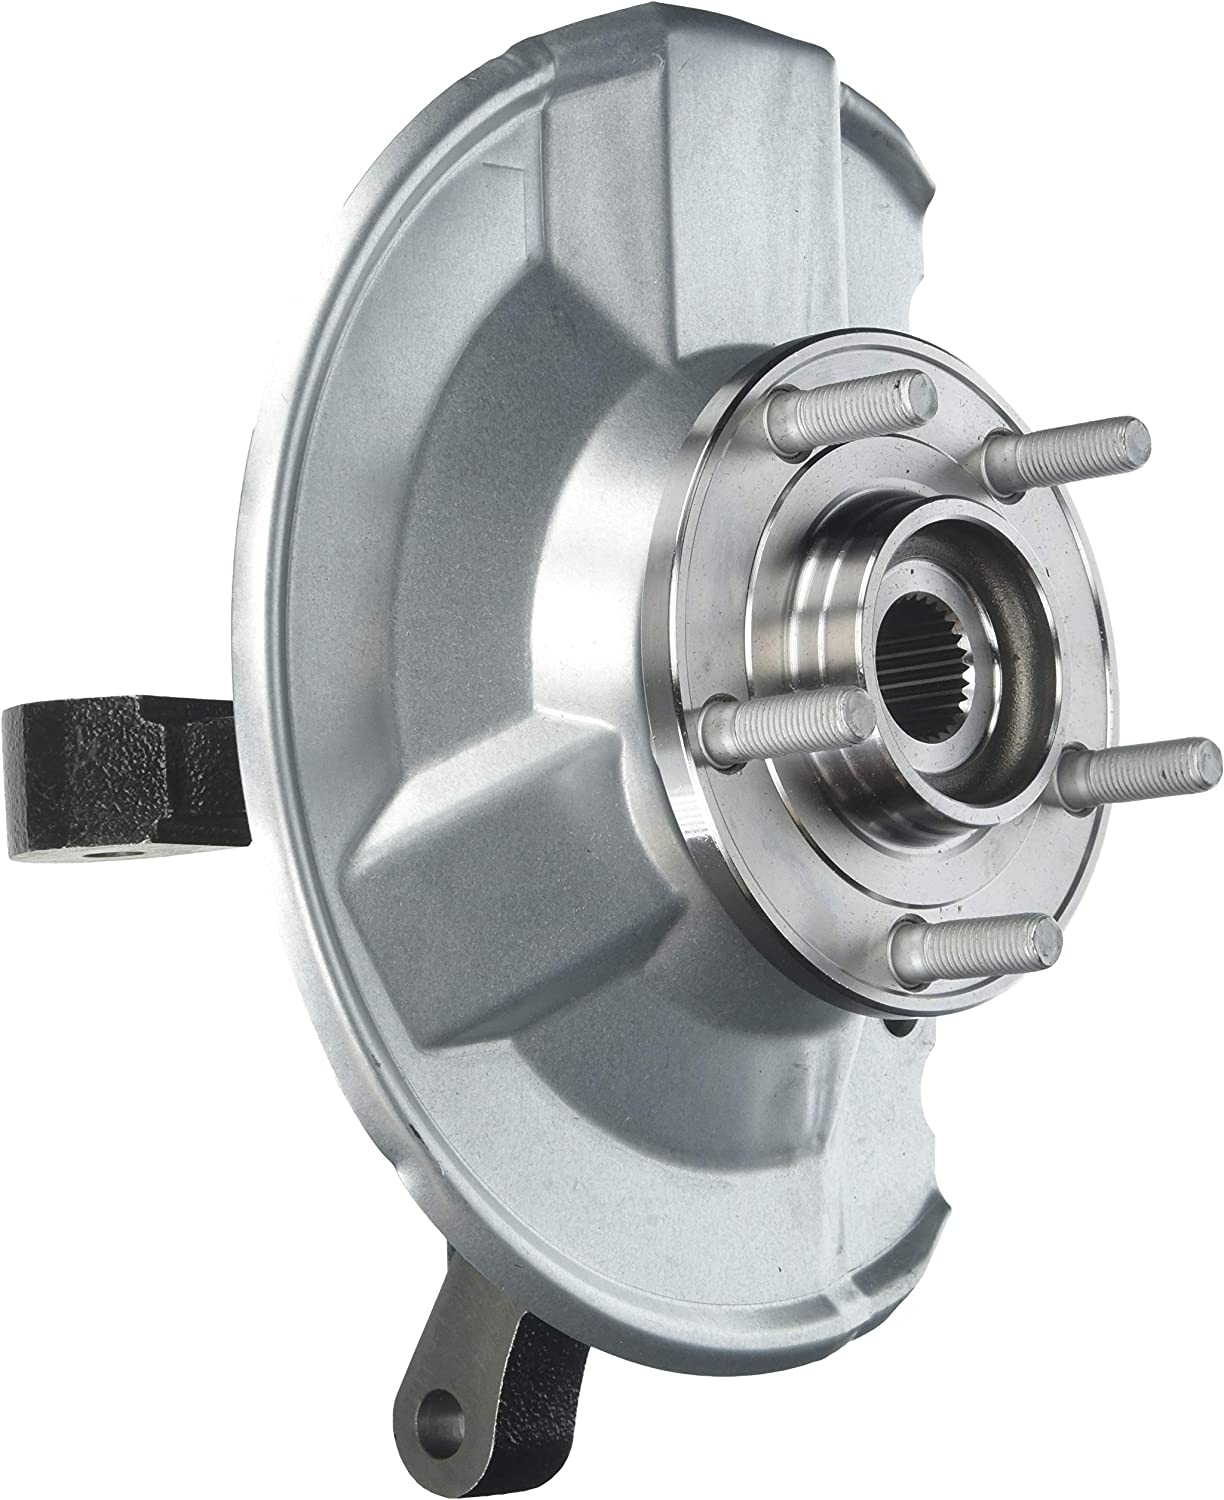 Crown Automotive Time sale Hub 2021 model Knuckle Silver Black Steering Assembly